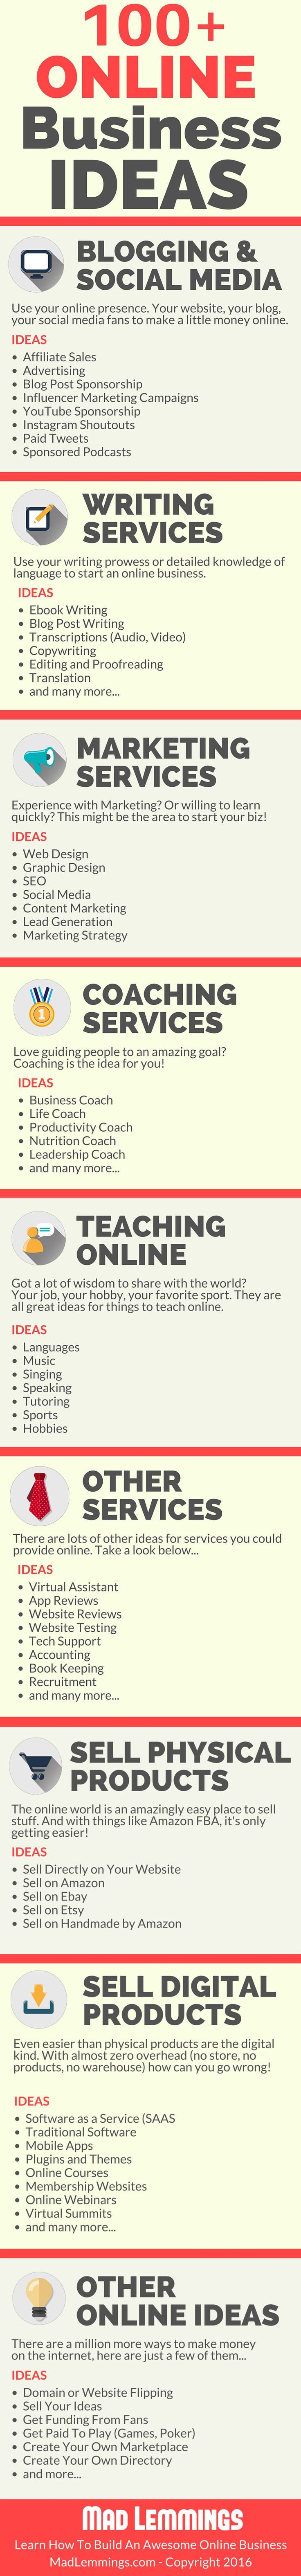 100+ Income Generating Online Business Ideas - If you are thinking about starting an online business then this is the perfect guide. It consists of over 100 income generating business ideas! - #infographic